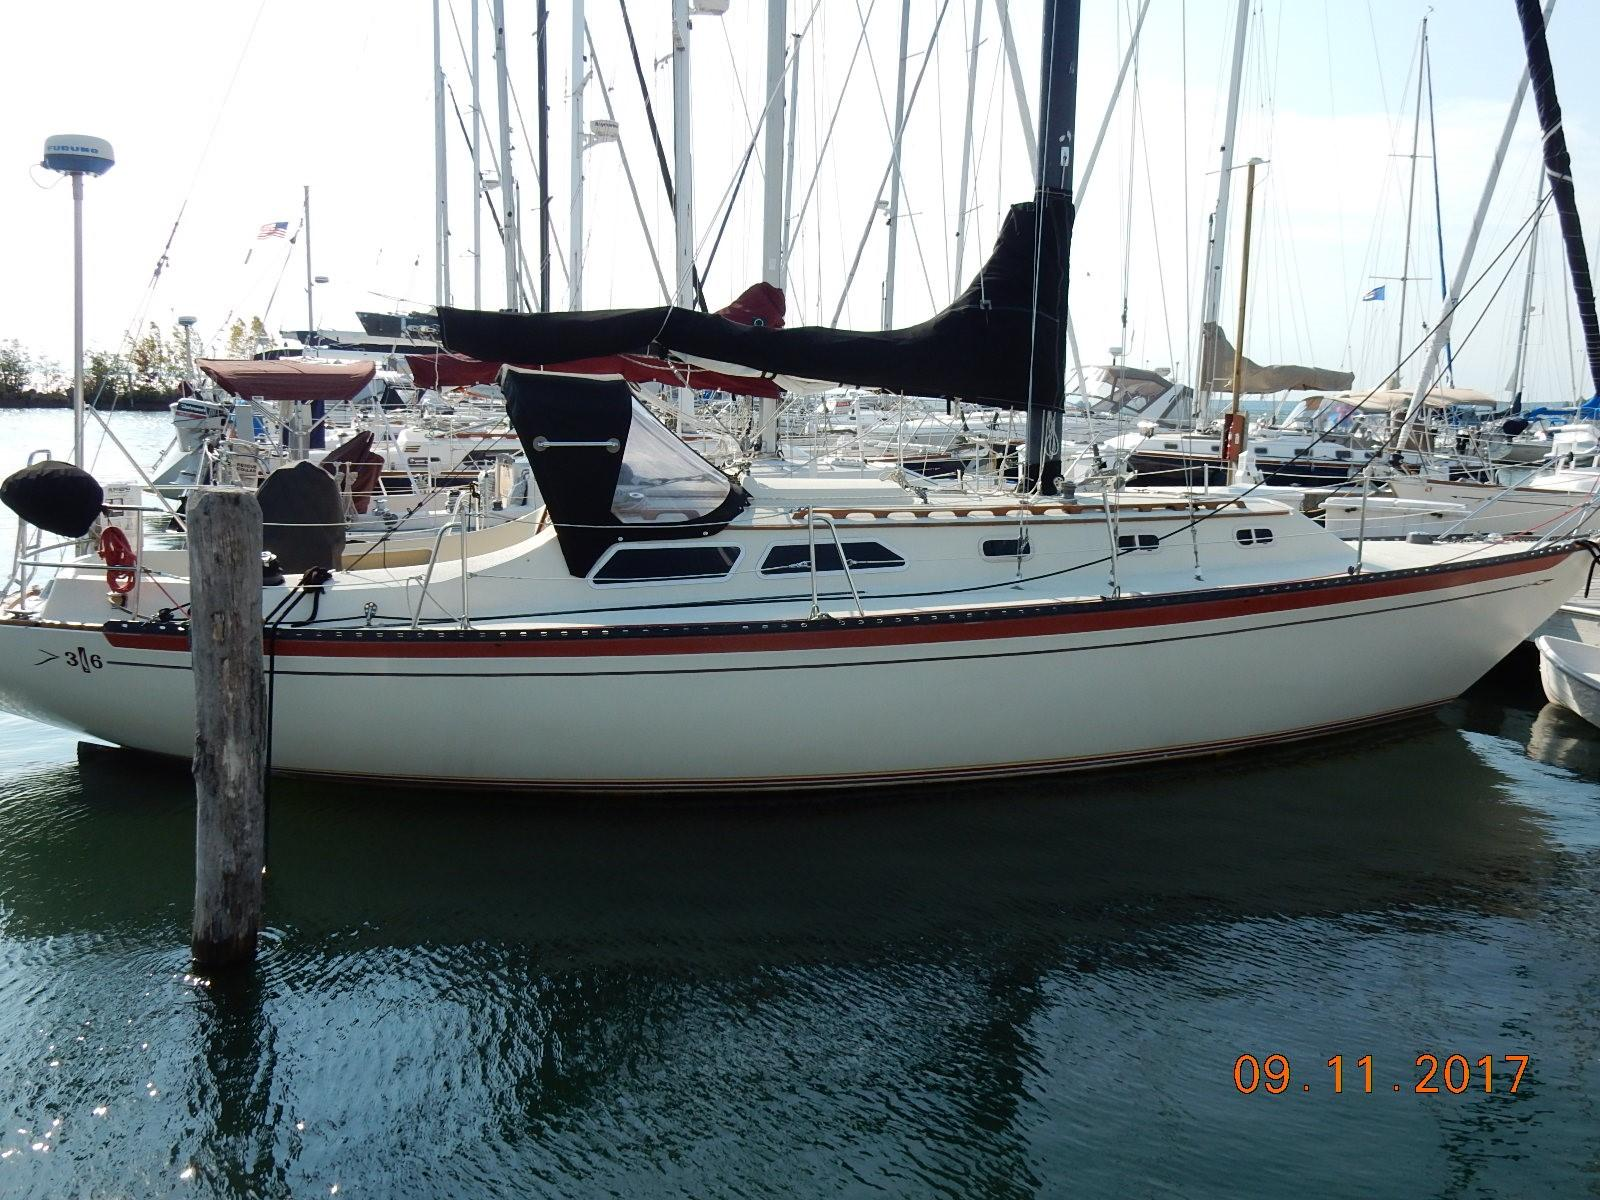 1978 Islander 36 Sail Boat For Sale - www.yachtworld.com